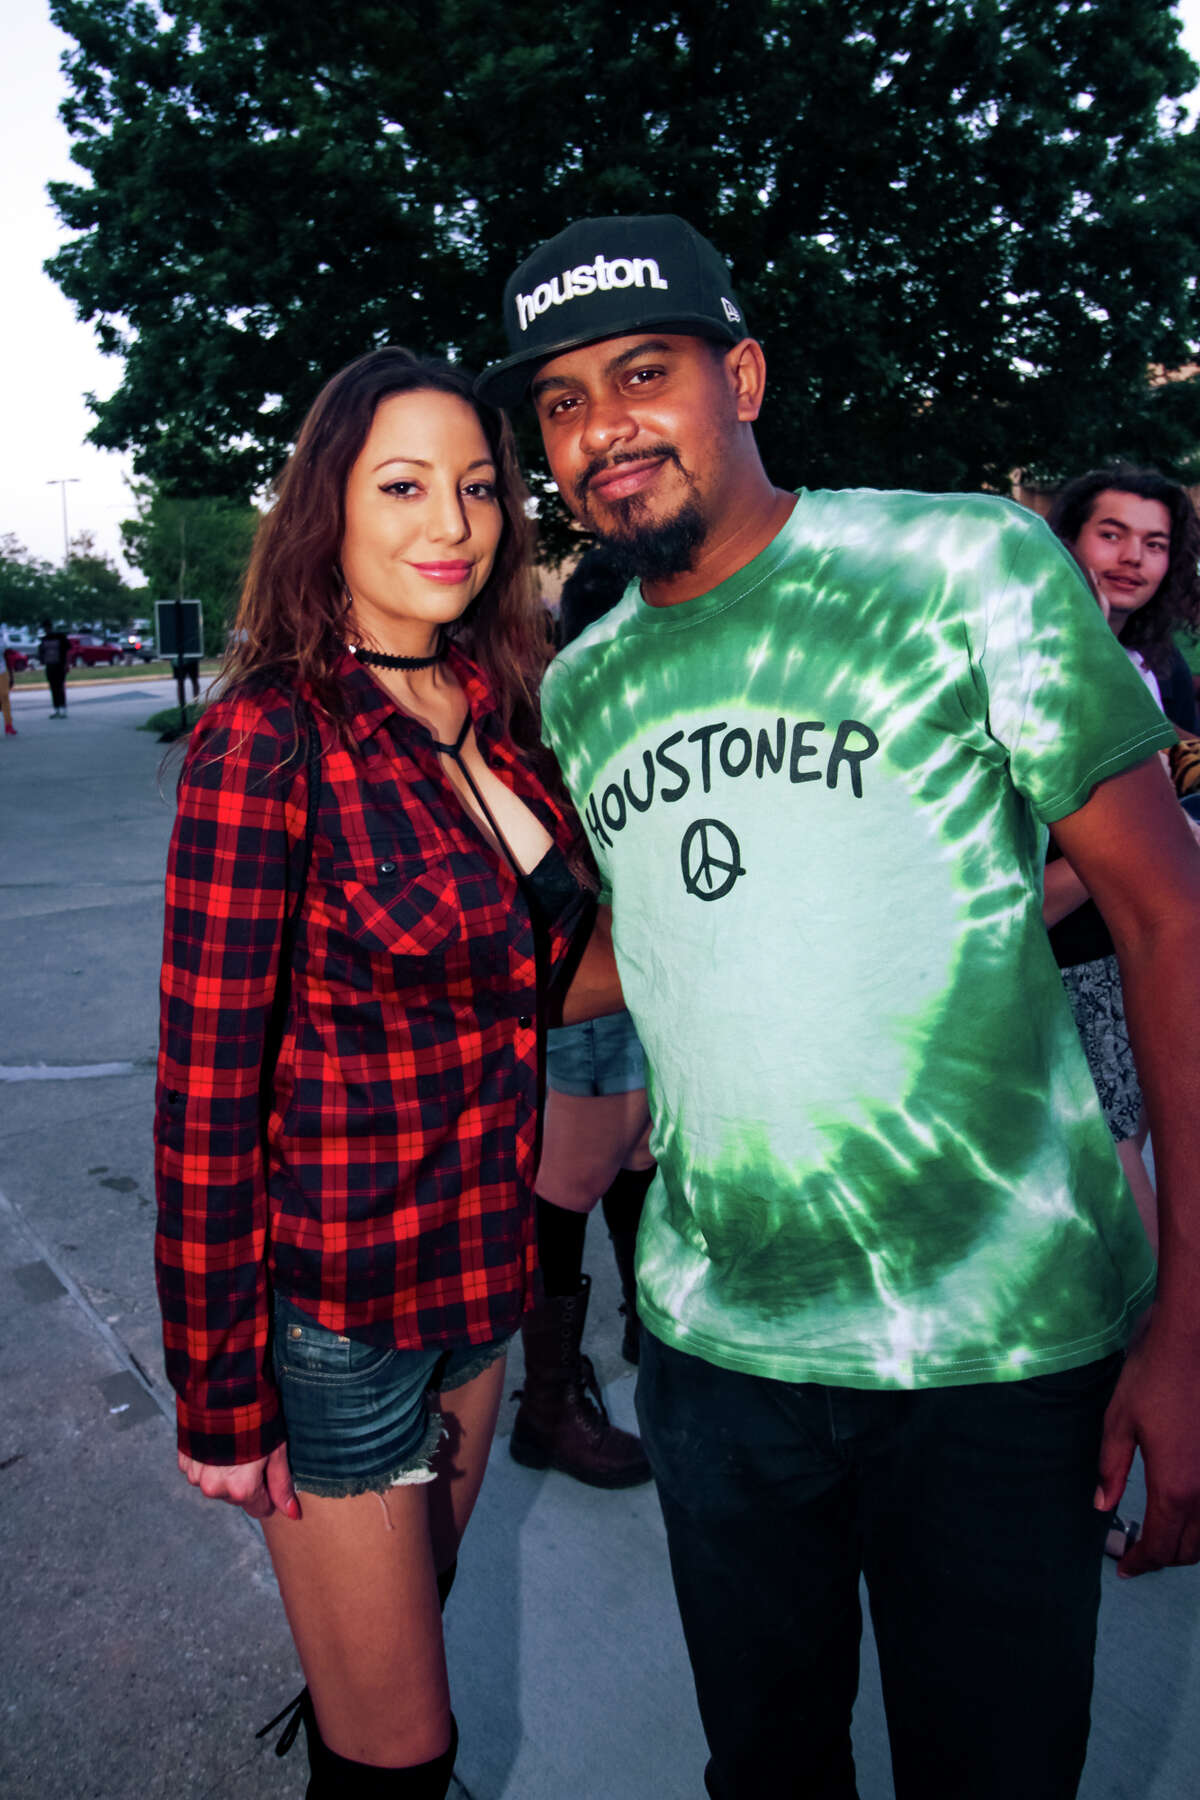 Fans of Kendrick Lamar, Sza, ScHoolboy Q and the rest of the Top Dawg Entertainment roster attend the Houston stop of The Championship Tour at the Cynthia Woods Mitchell Pavilion on May 19, 2018, in The Woodlands. (Photo by Marco Torres/For the Chronicle)